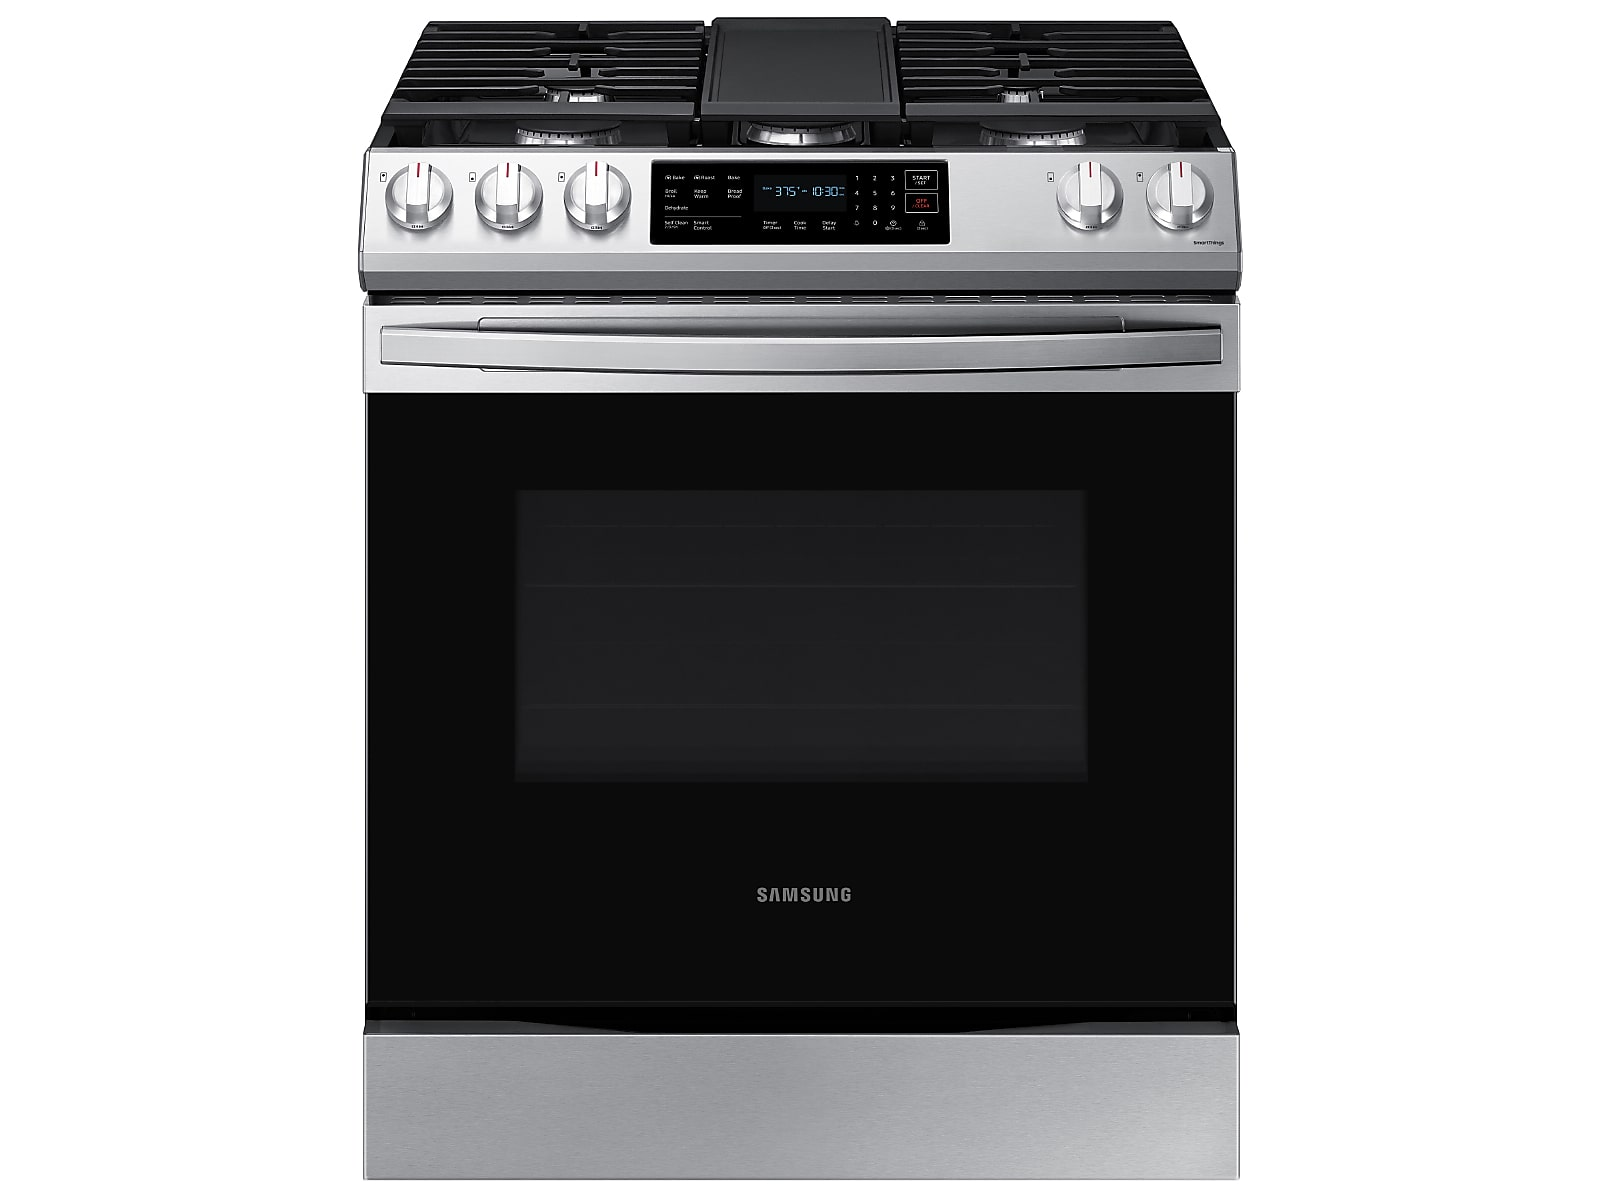 Samsung 6.0 cu. ft. Smart Slide-in Gas Range with Convection in Silver(NX60T8311SS/AA)